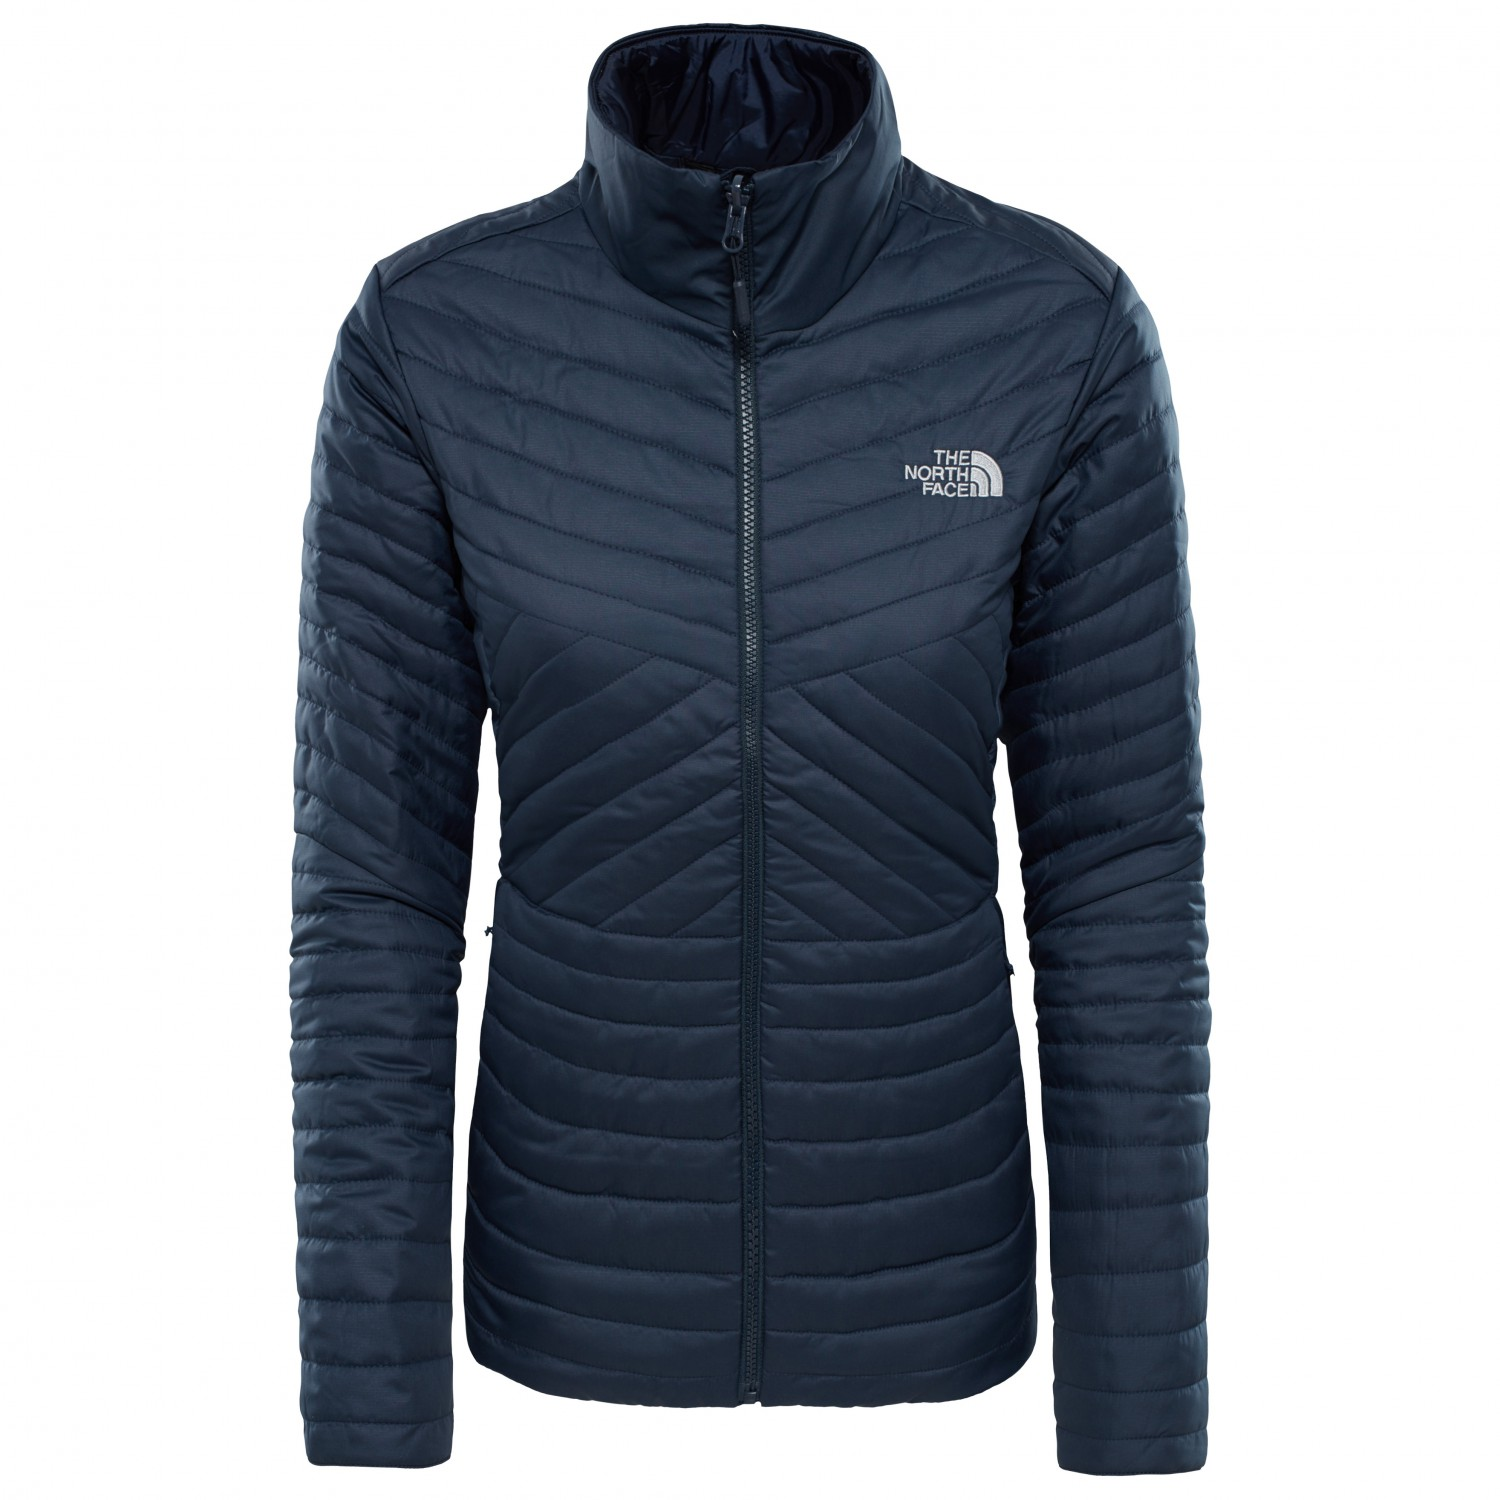 e247f537b The North Face - Women's Inlux Triclimate - 3-in-1 jacket - Urban Navy /  Urban Navy | XS